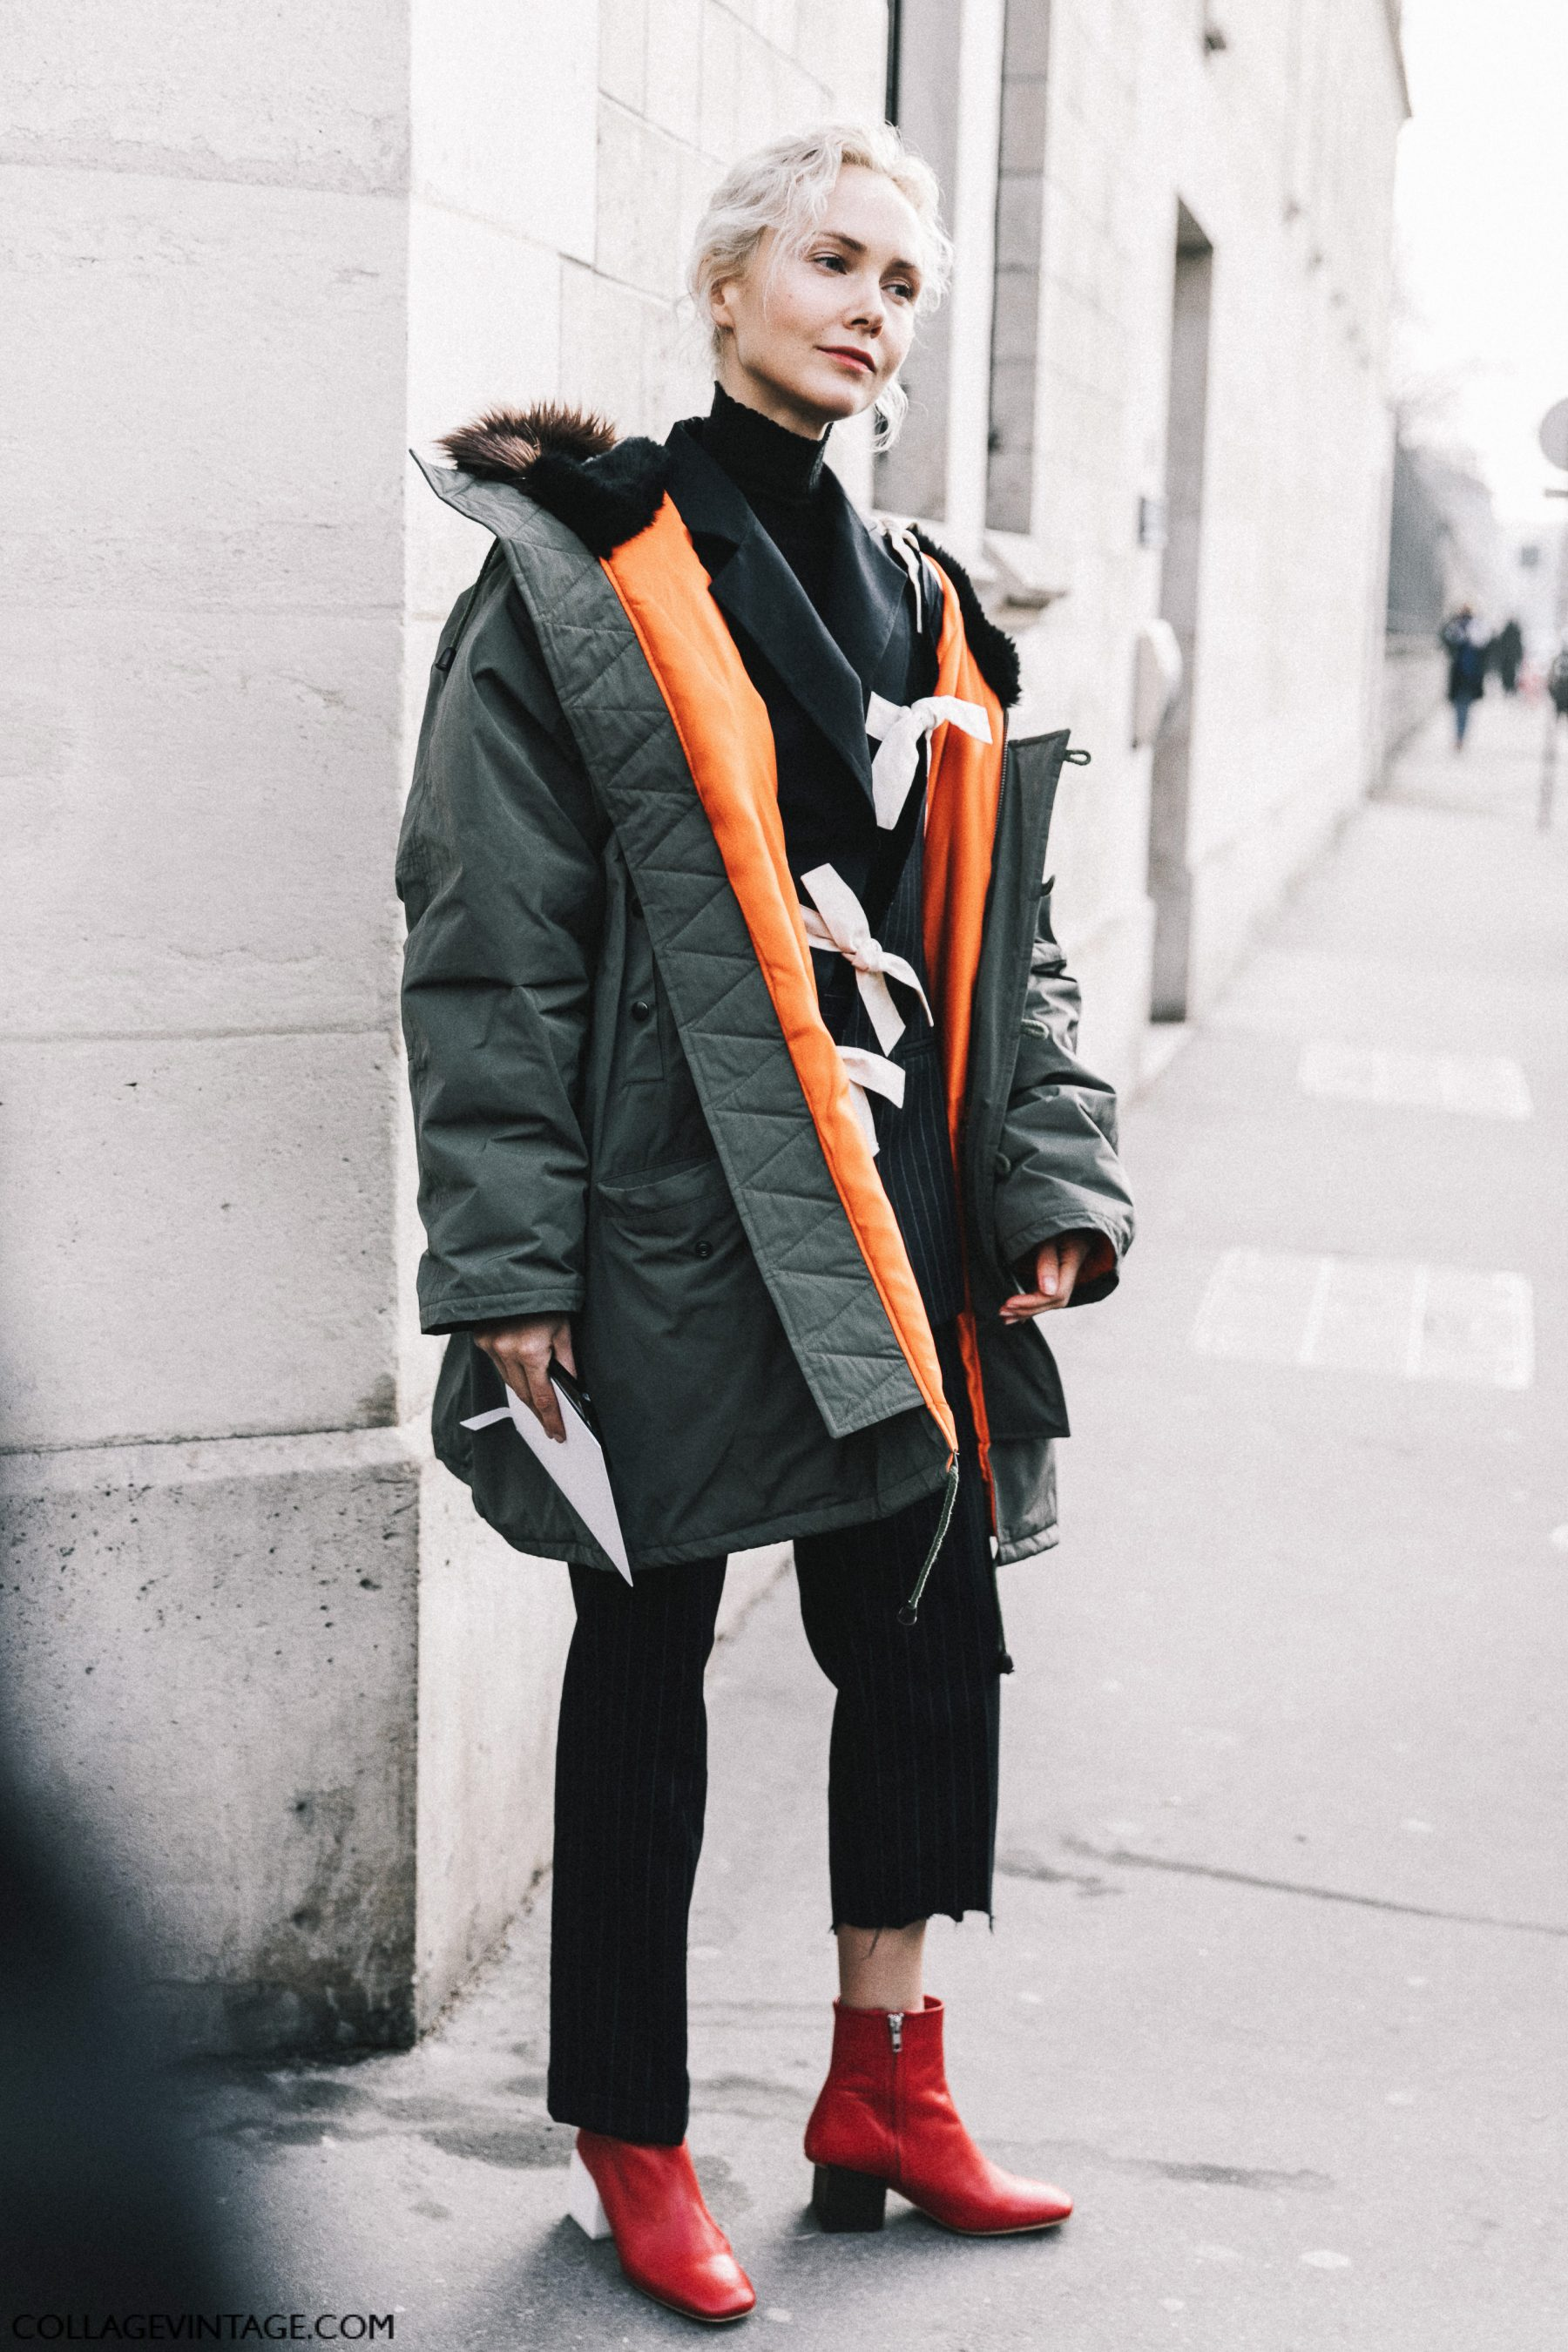 Couture_Paris_Fashion_Week-PFW-Street_Style-Dior-Outfit-Collage_Vintage-125-1800x2700